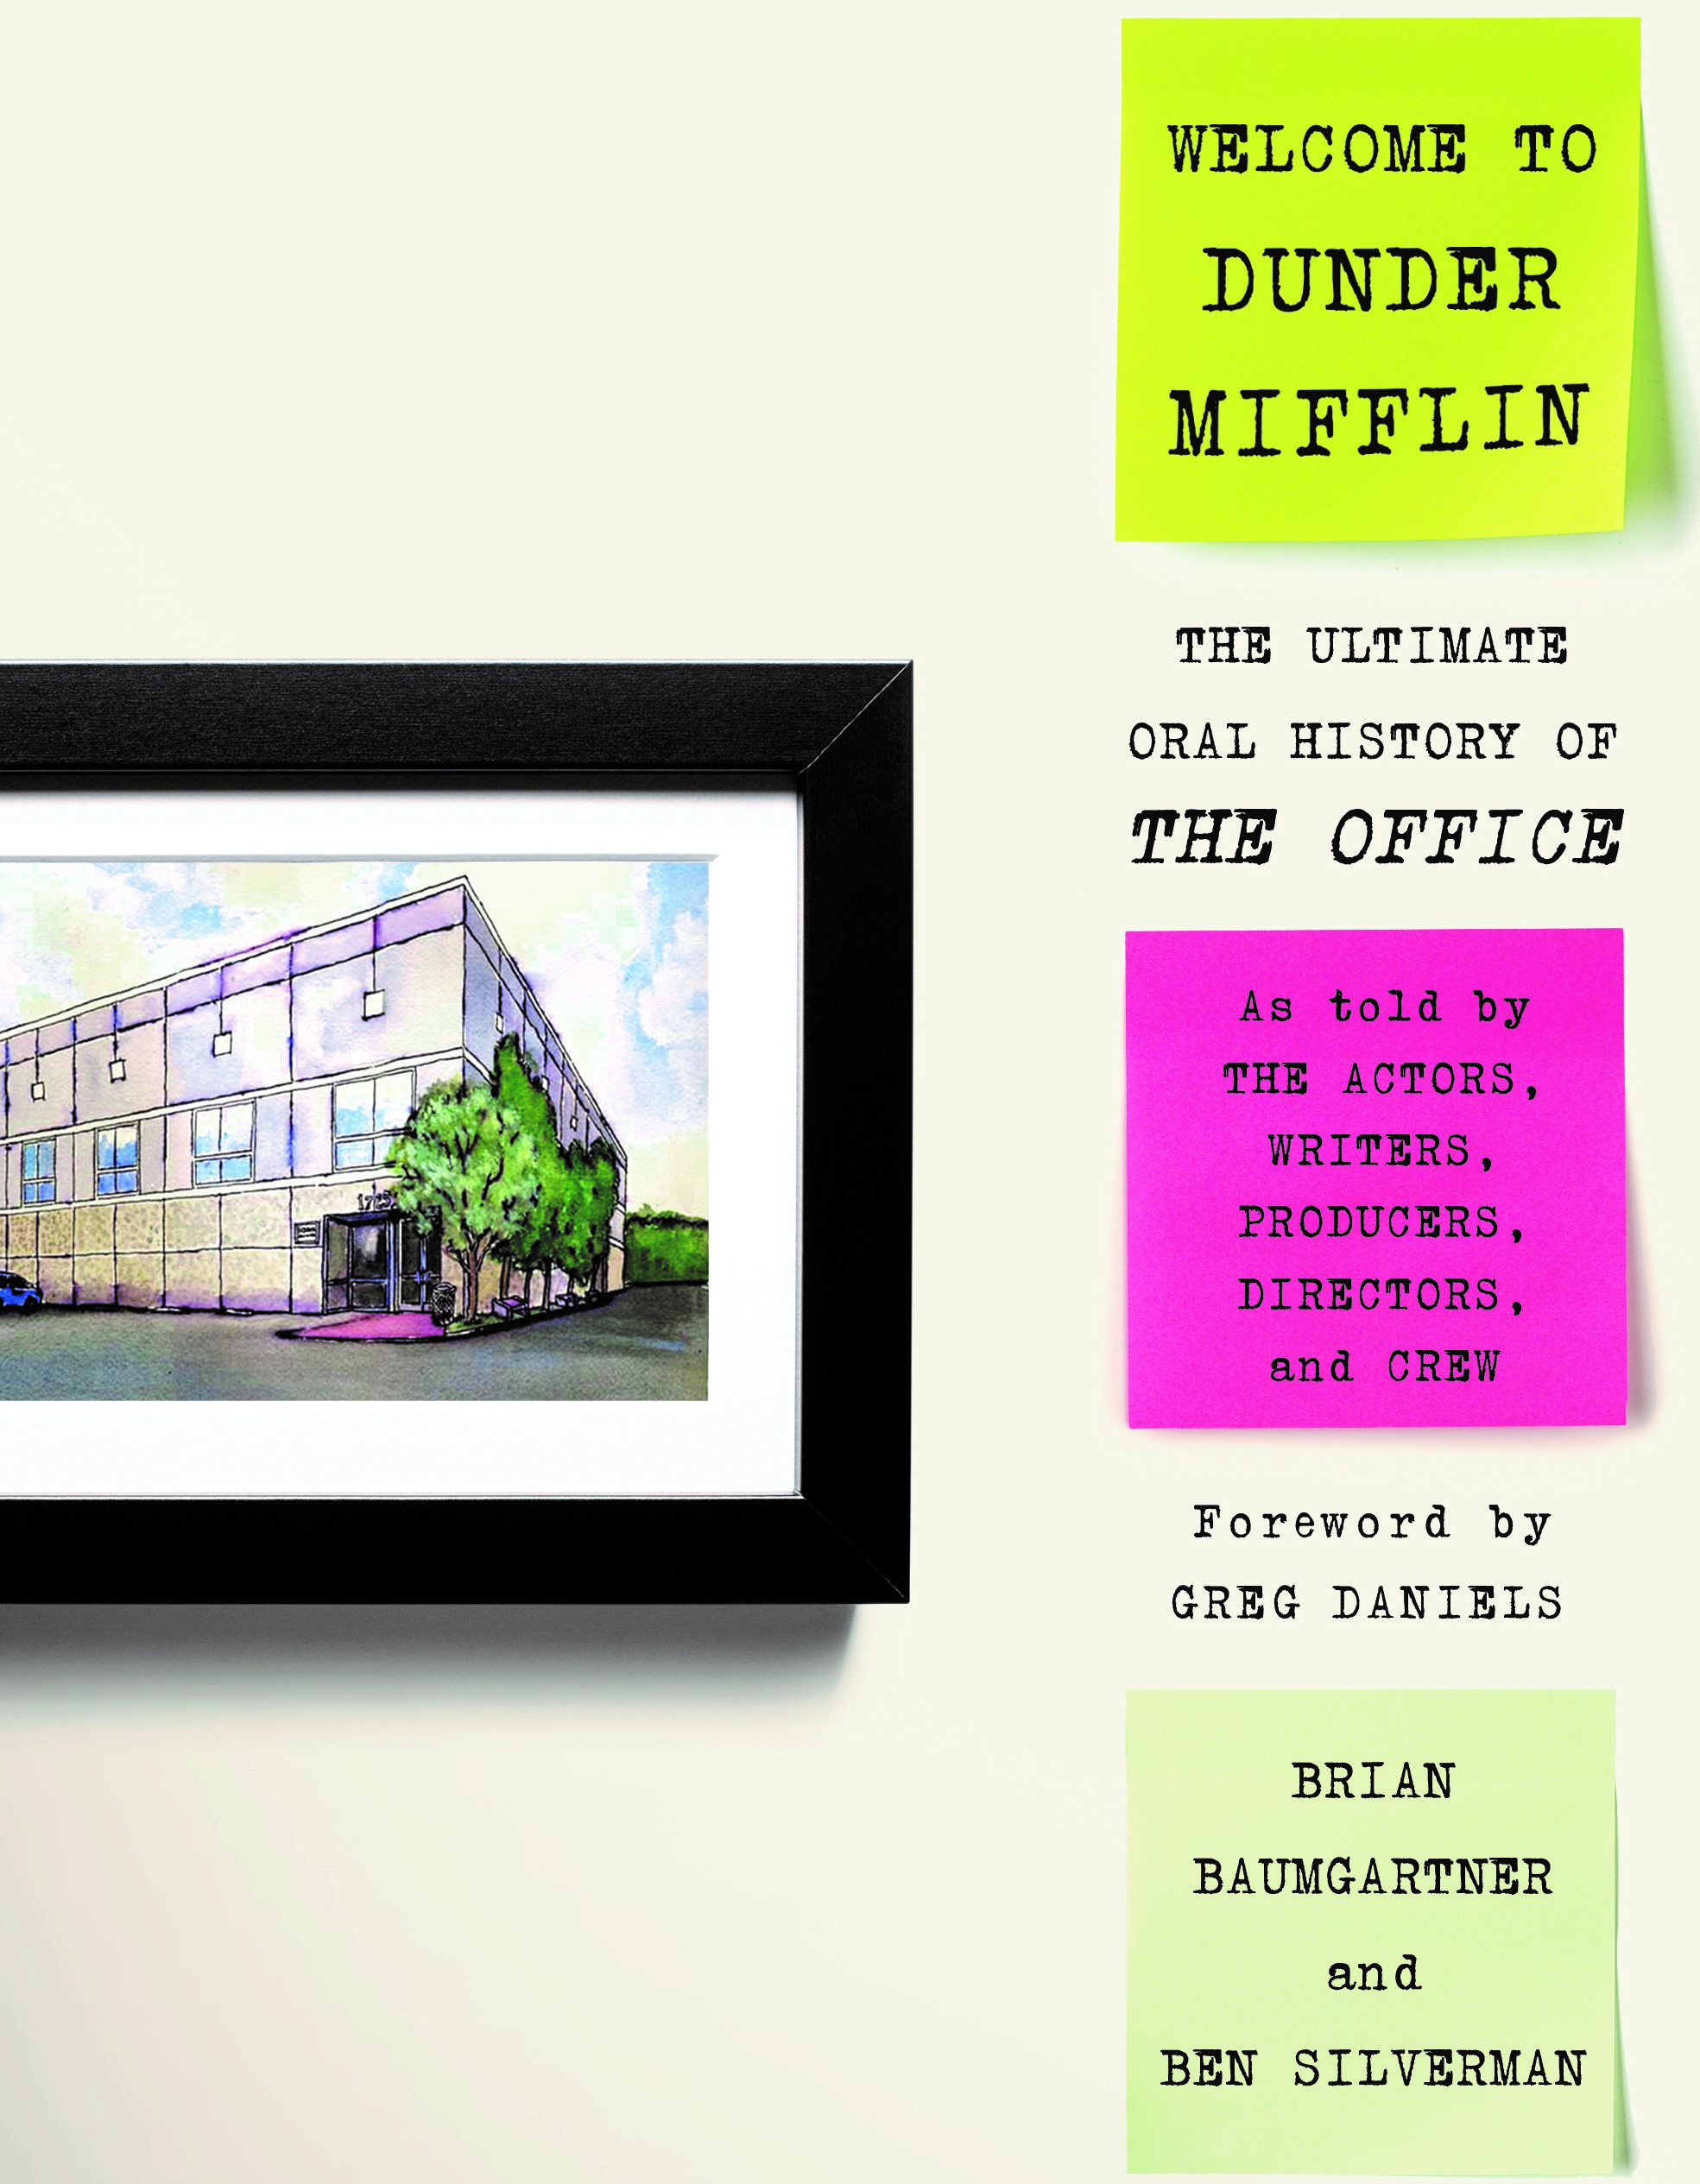 Official U.S. Book Launch: Welcome to Dunder Mifflin: The Ultimate Oral History of The Office by Brian Baumgartner and Ben Silverman